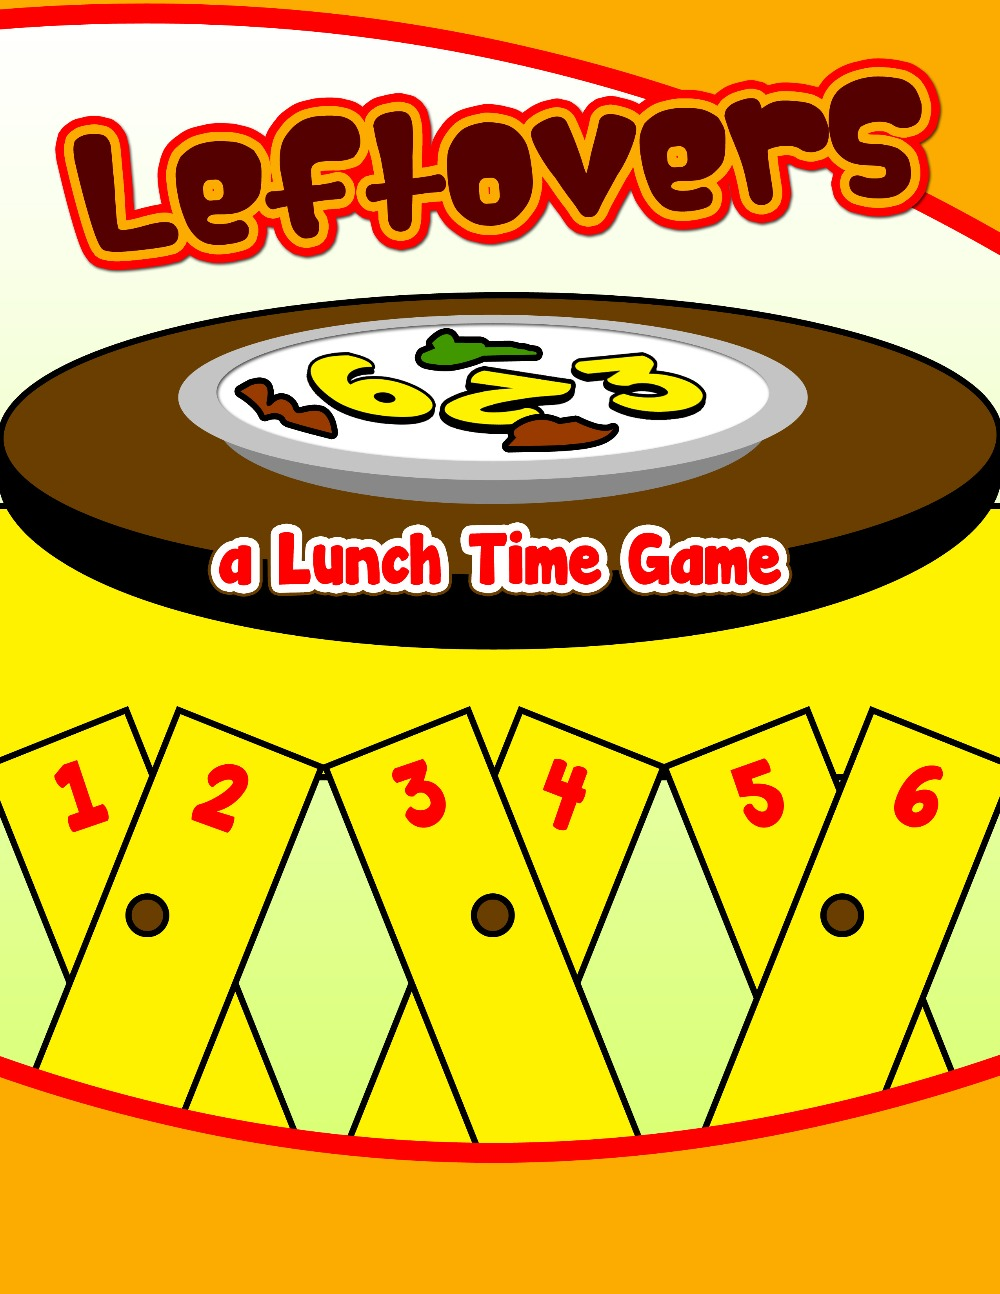 Leftover a lunch time game